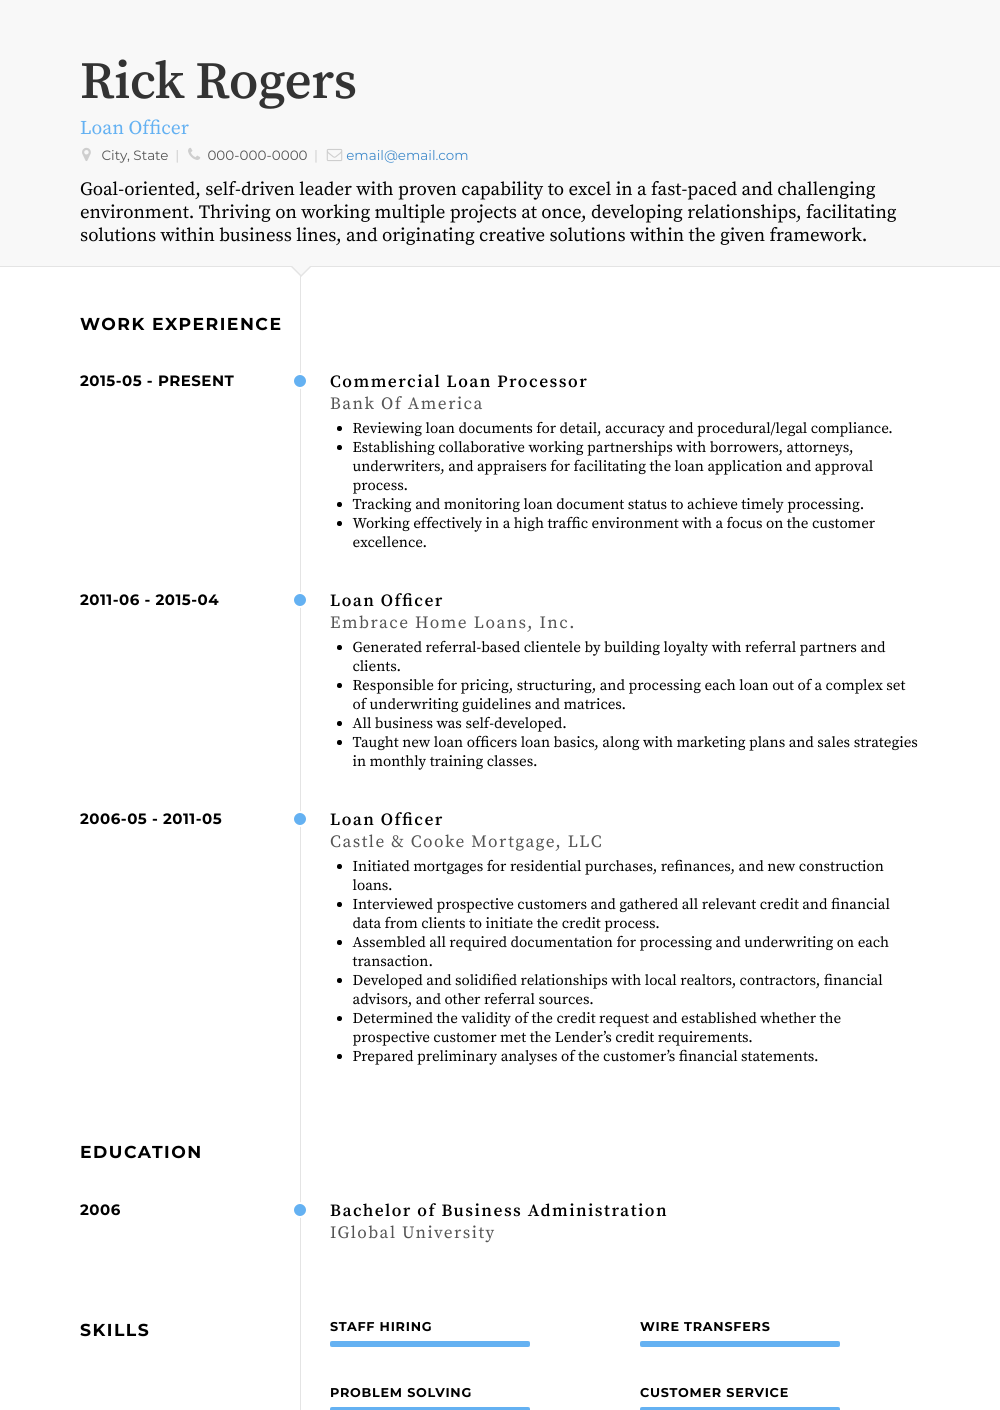 Loan Officer Resume Sample and Template